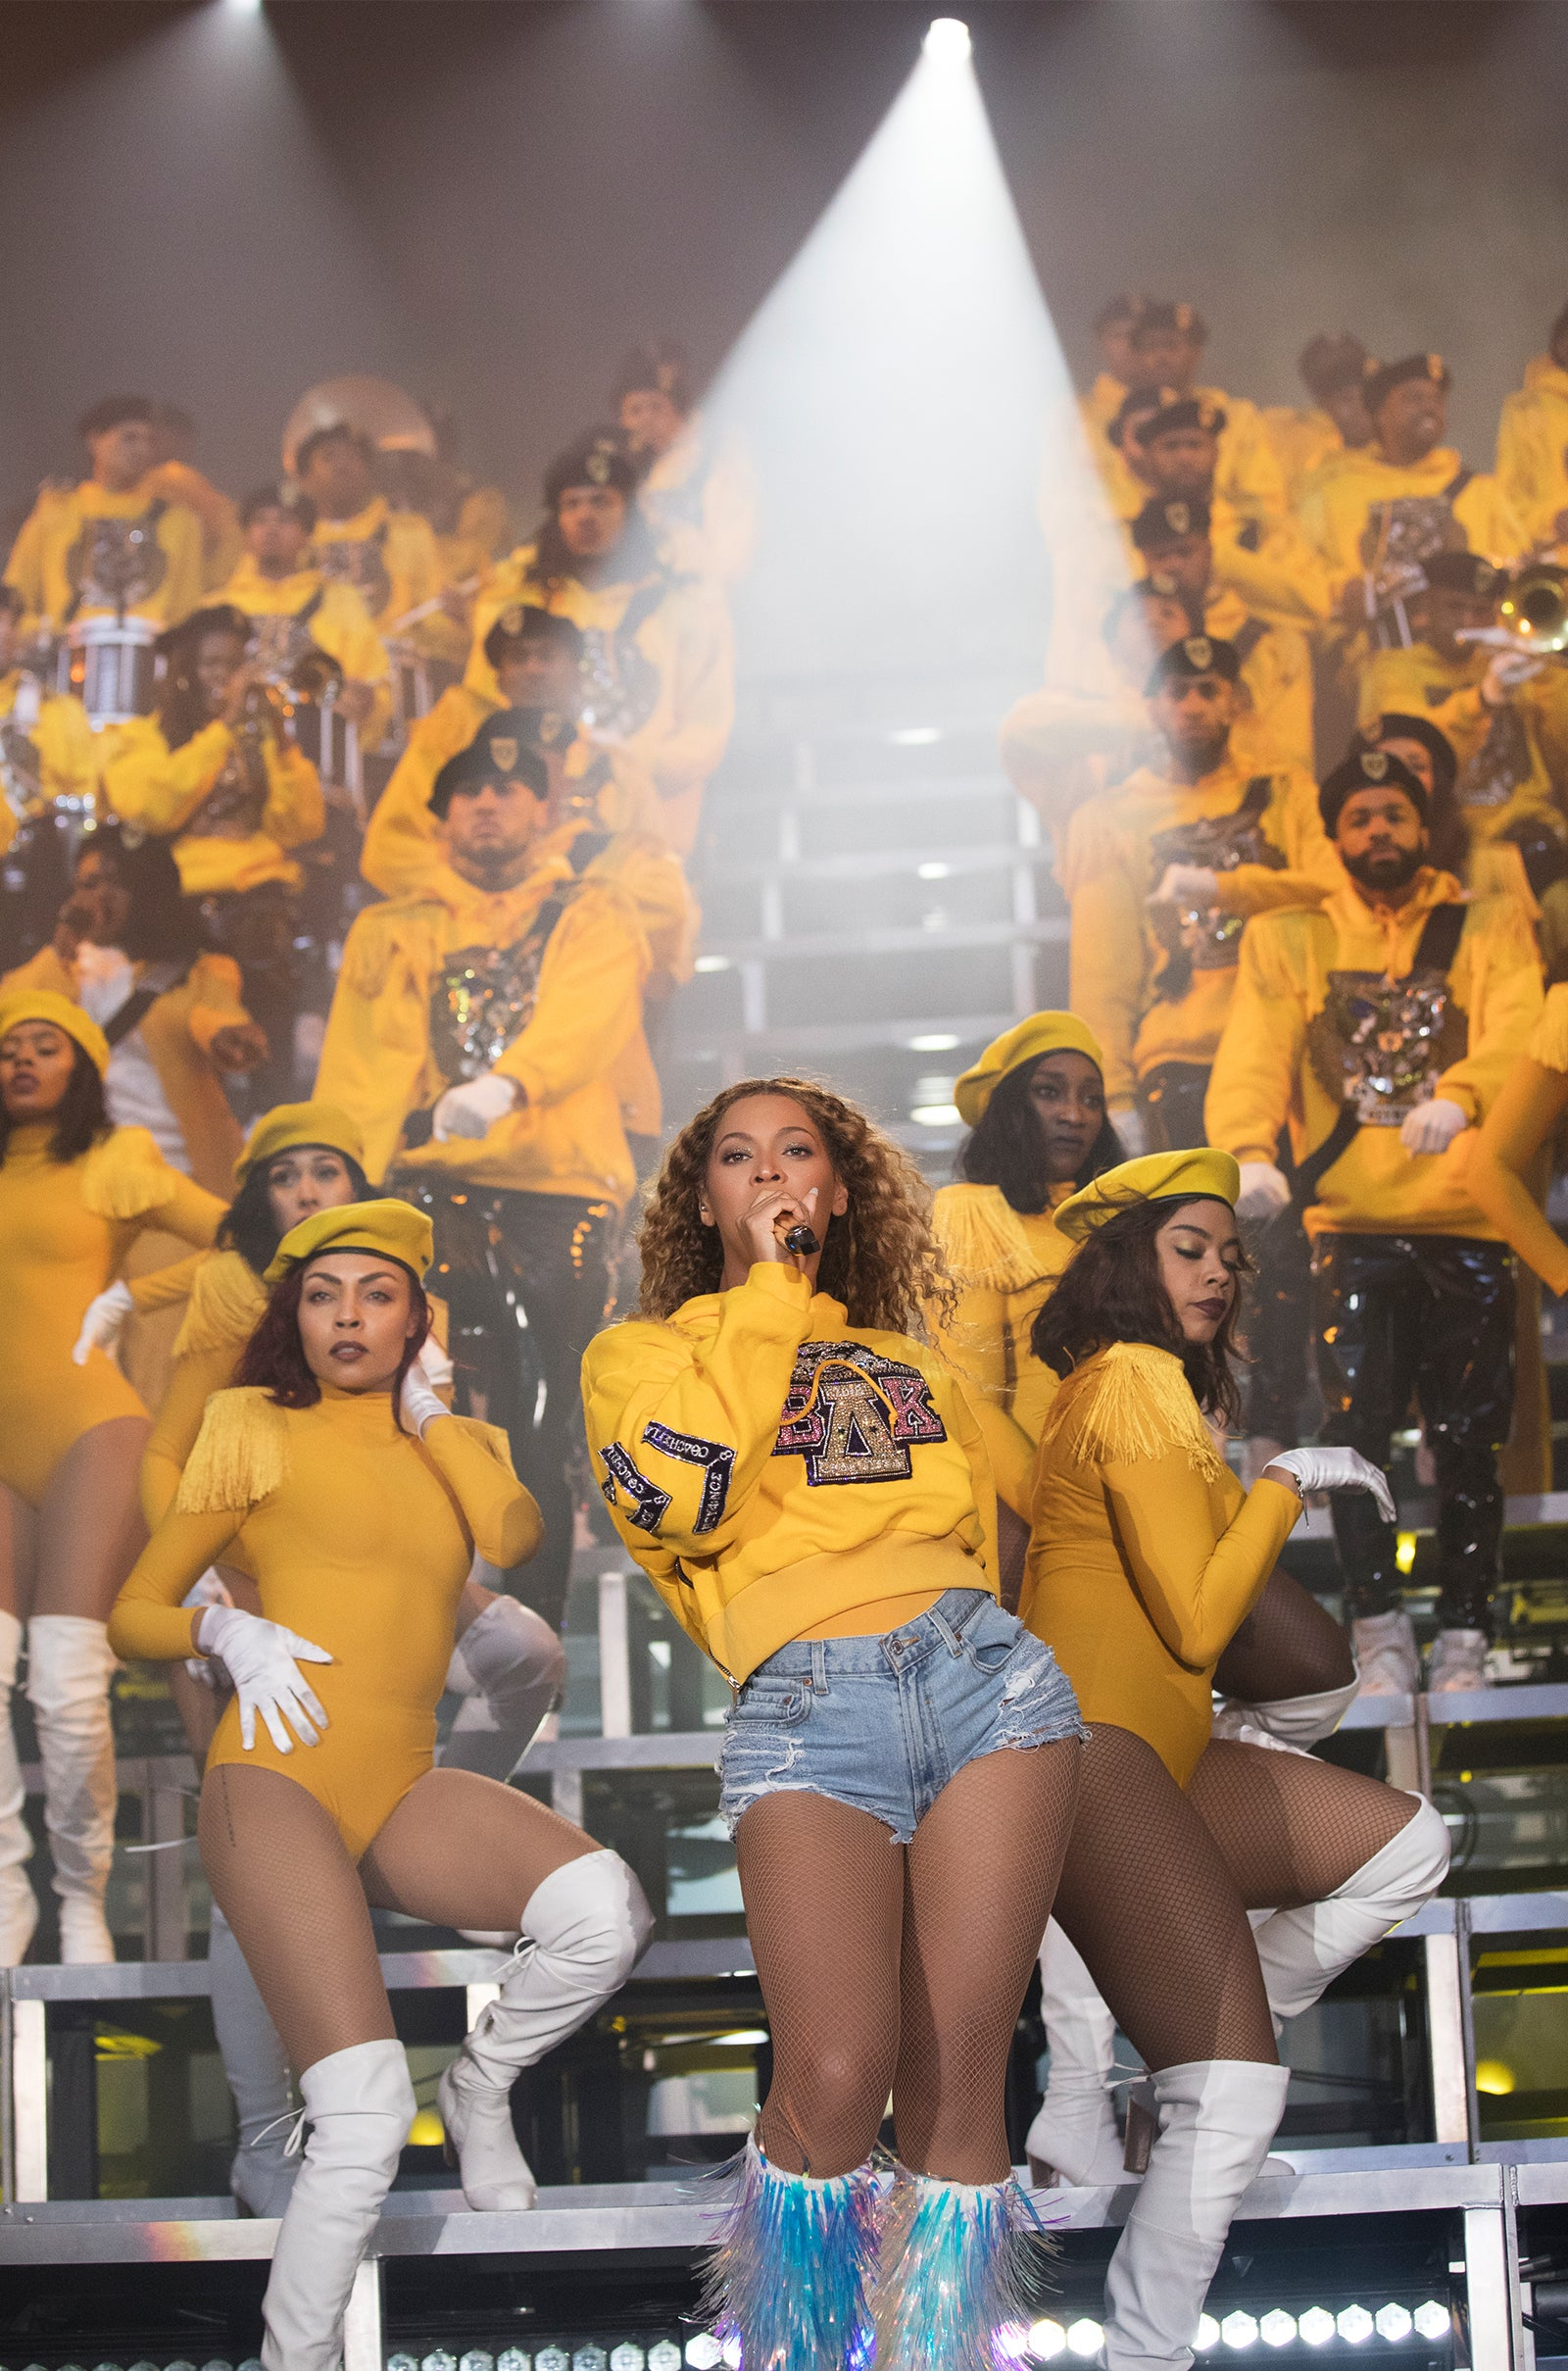 EXCLUSIVE: Beyoncé Drops Beychella Merch Just In Time For Her Second Coachella Performance